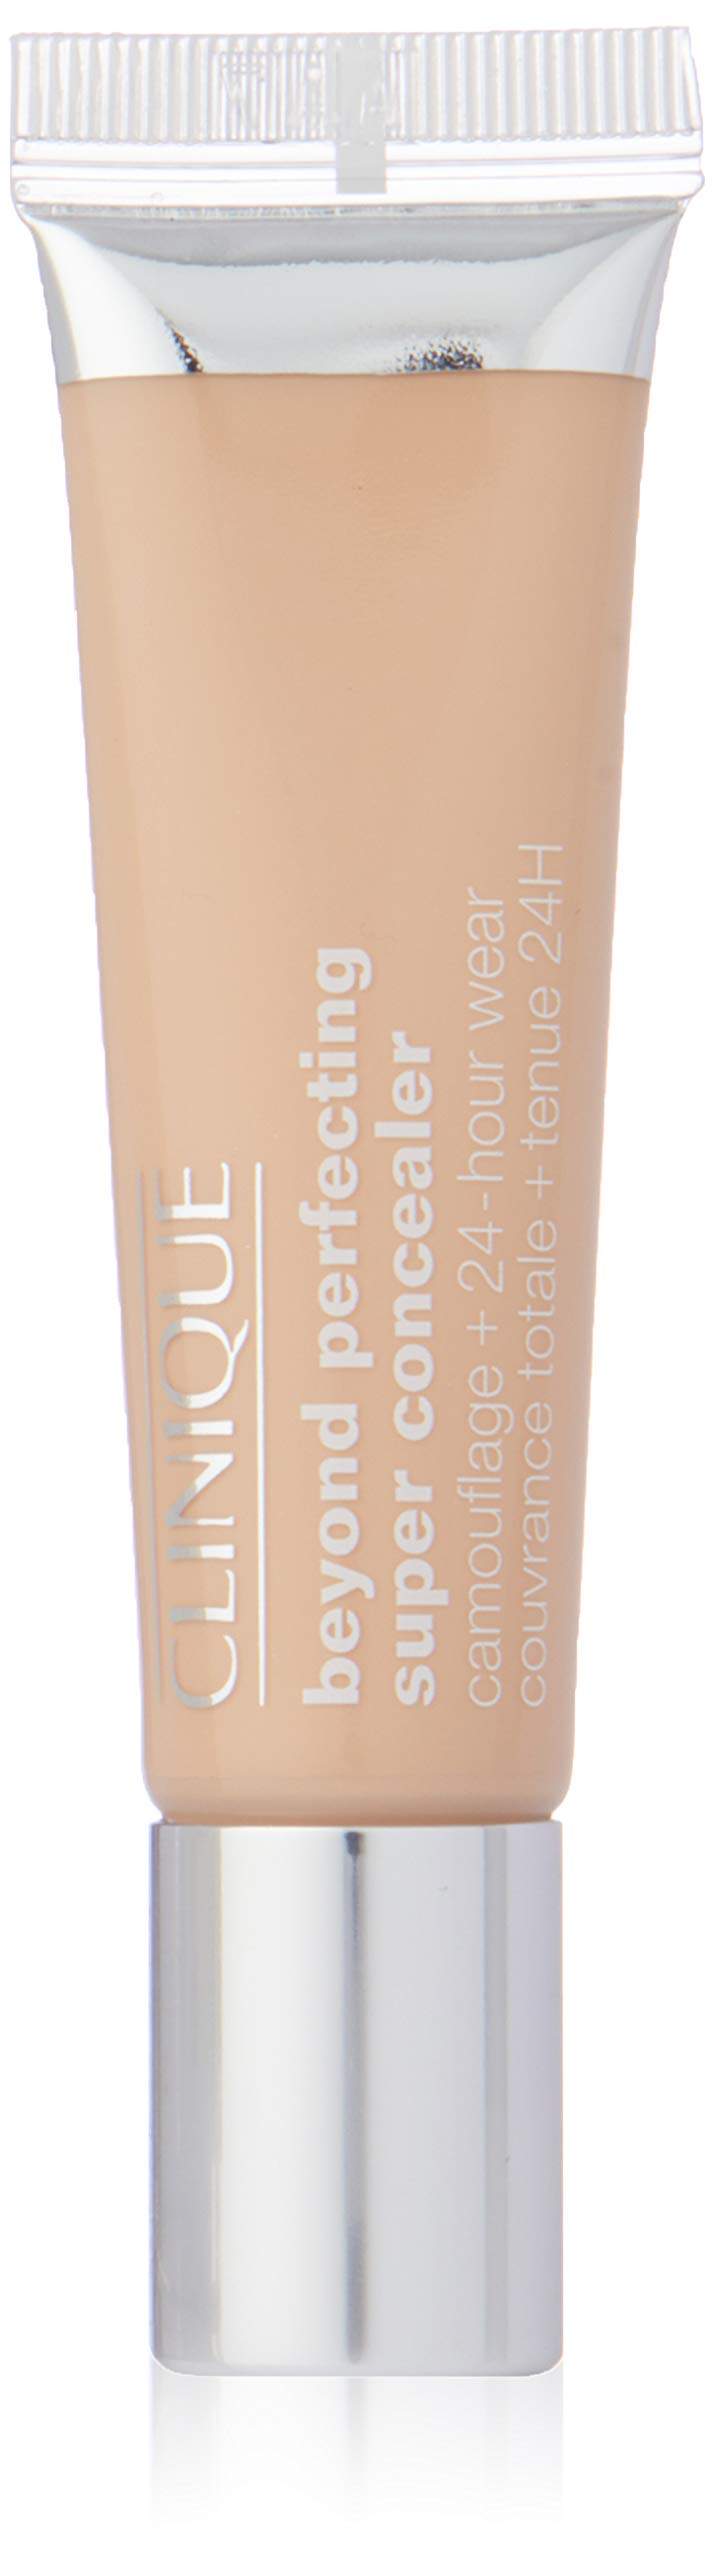 Clinique Beyond Perfecting Super Concealer Camouflage Plus 24-Hour Wear, Moderately Fair, 0.28 Ounce by Clinique